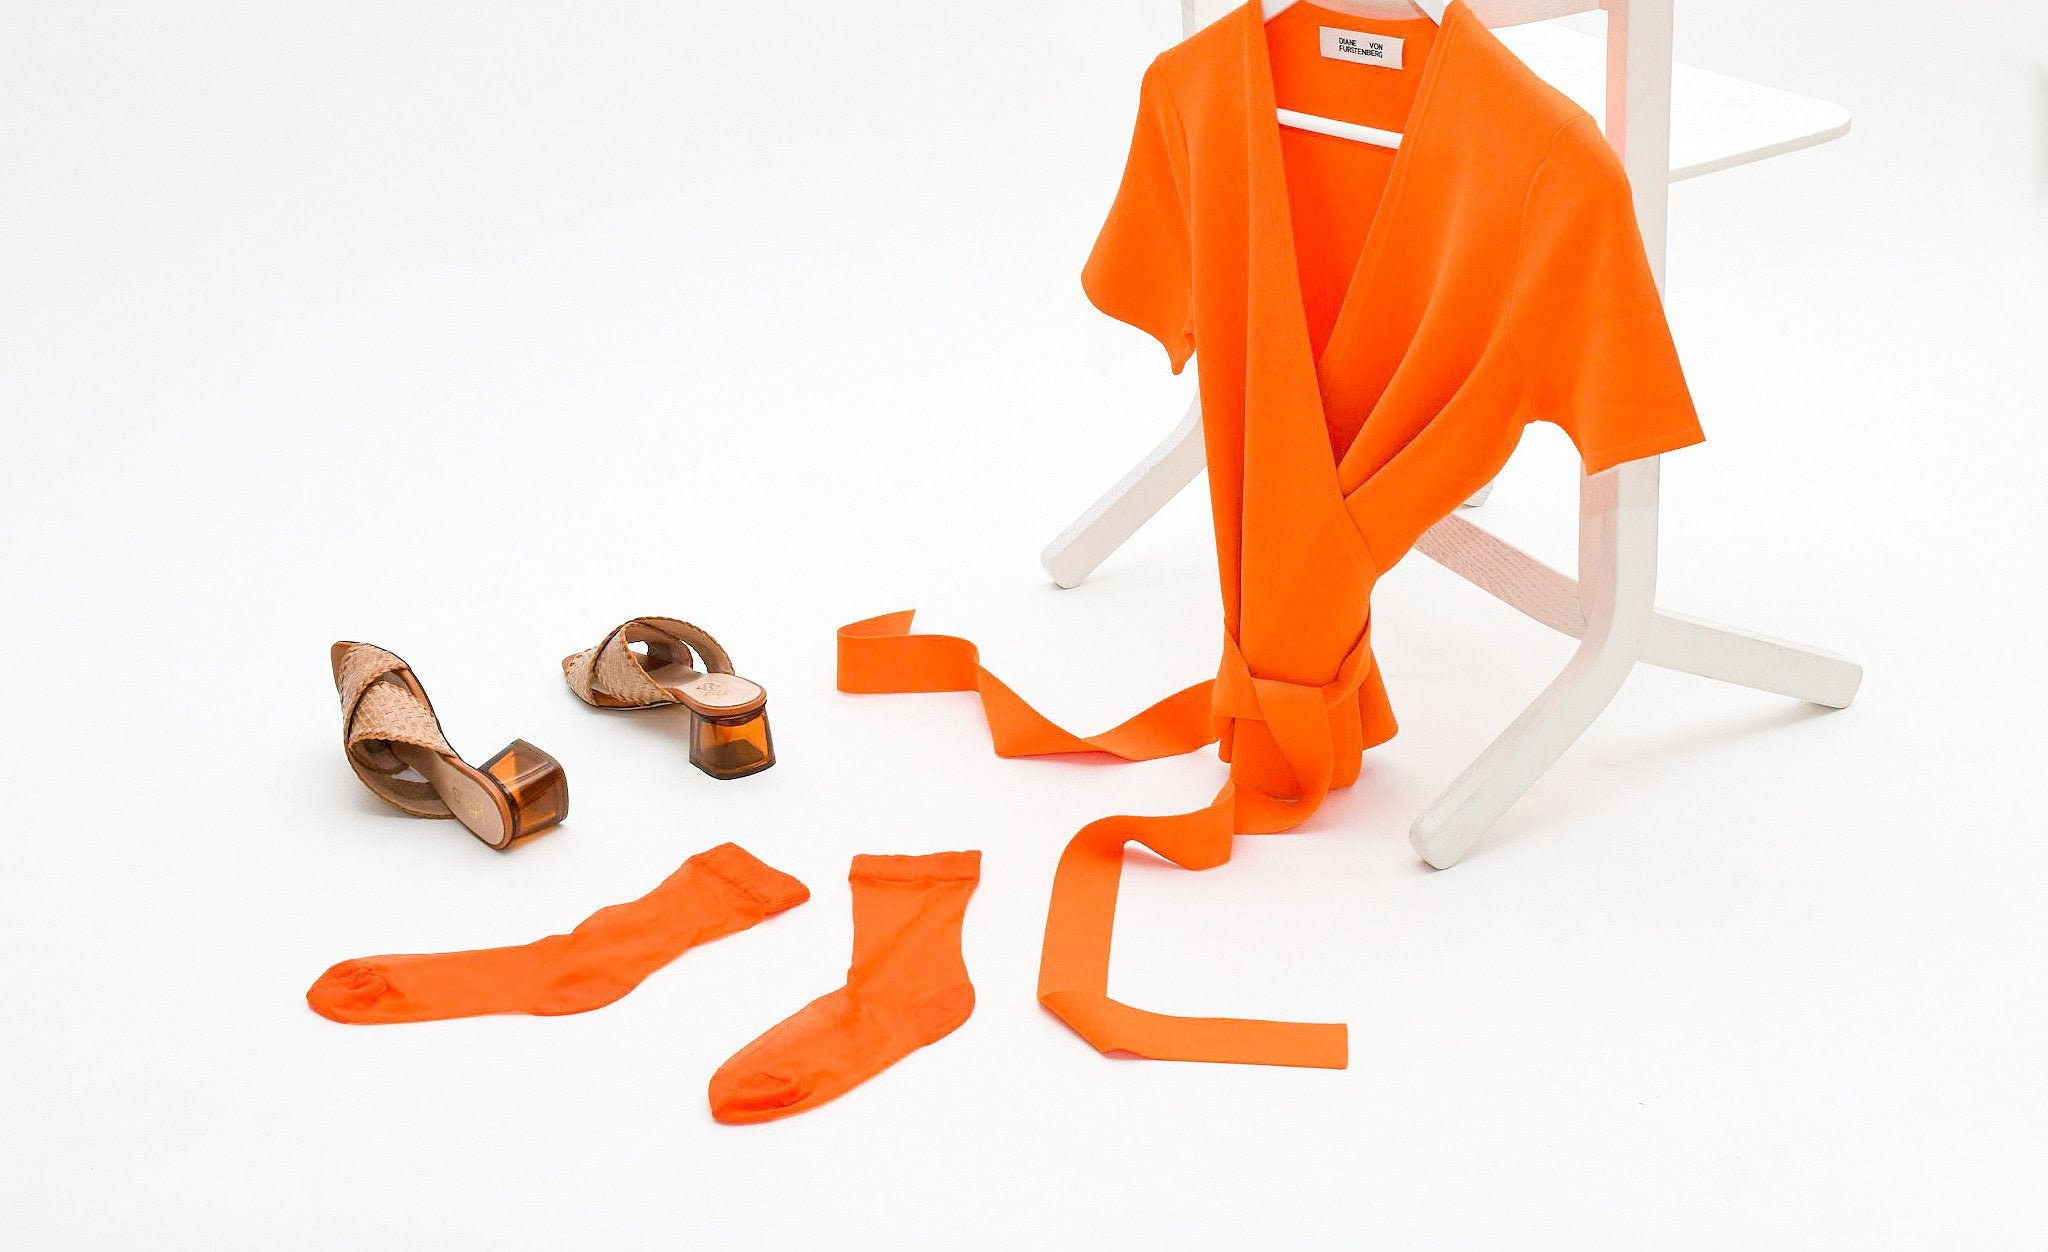 Orange dress and socks on a white chair on a white background next to high heeled shoes.